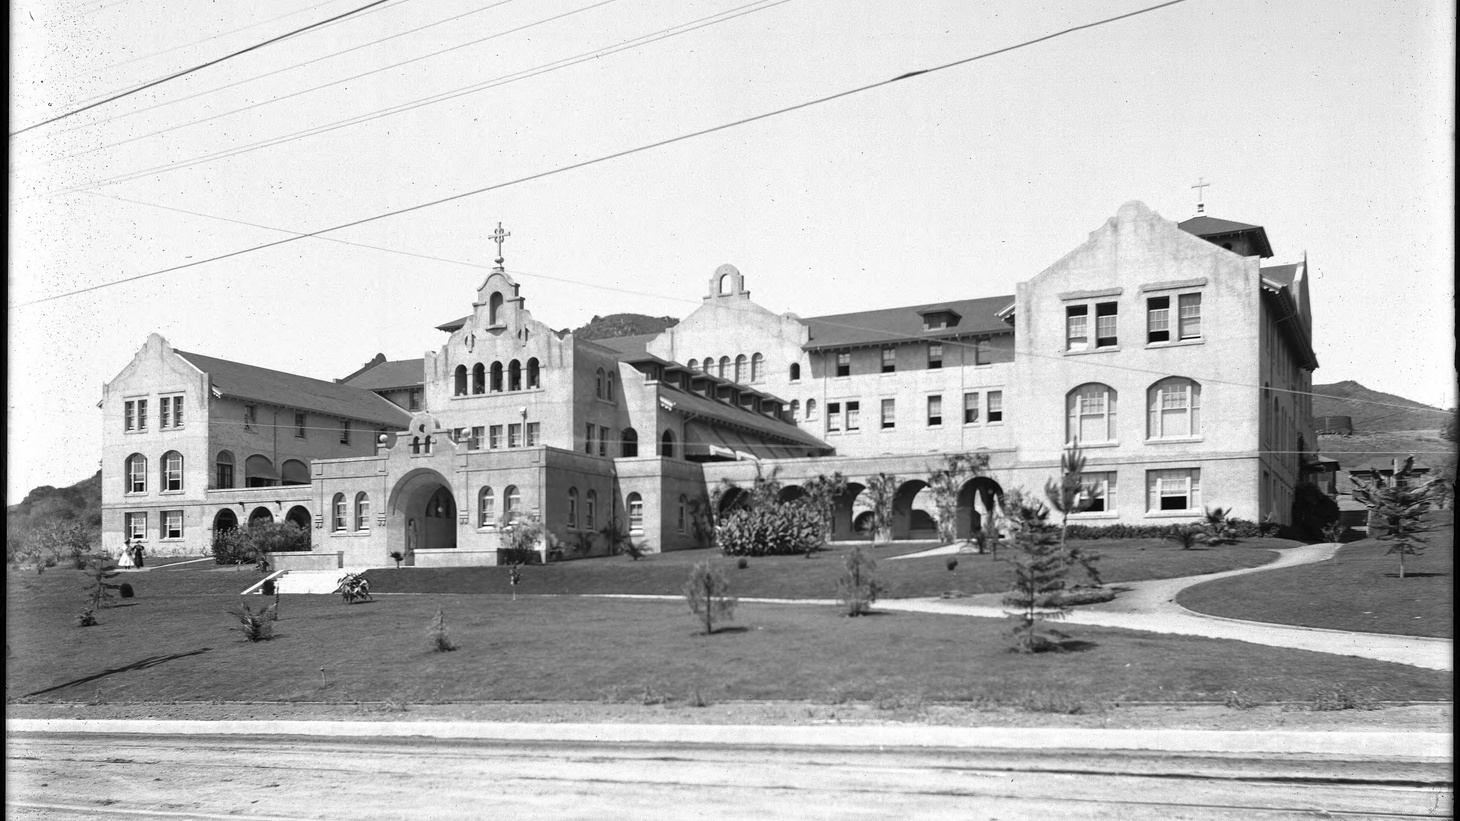 Front facade of the Immaculate Heart College, a Catholic girls school on Franklin Avenue at the head of Western Avenue, in the Los Feliz district of Los Angeles, California, in 1905.